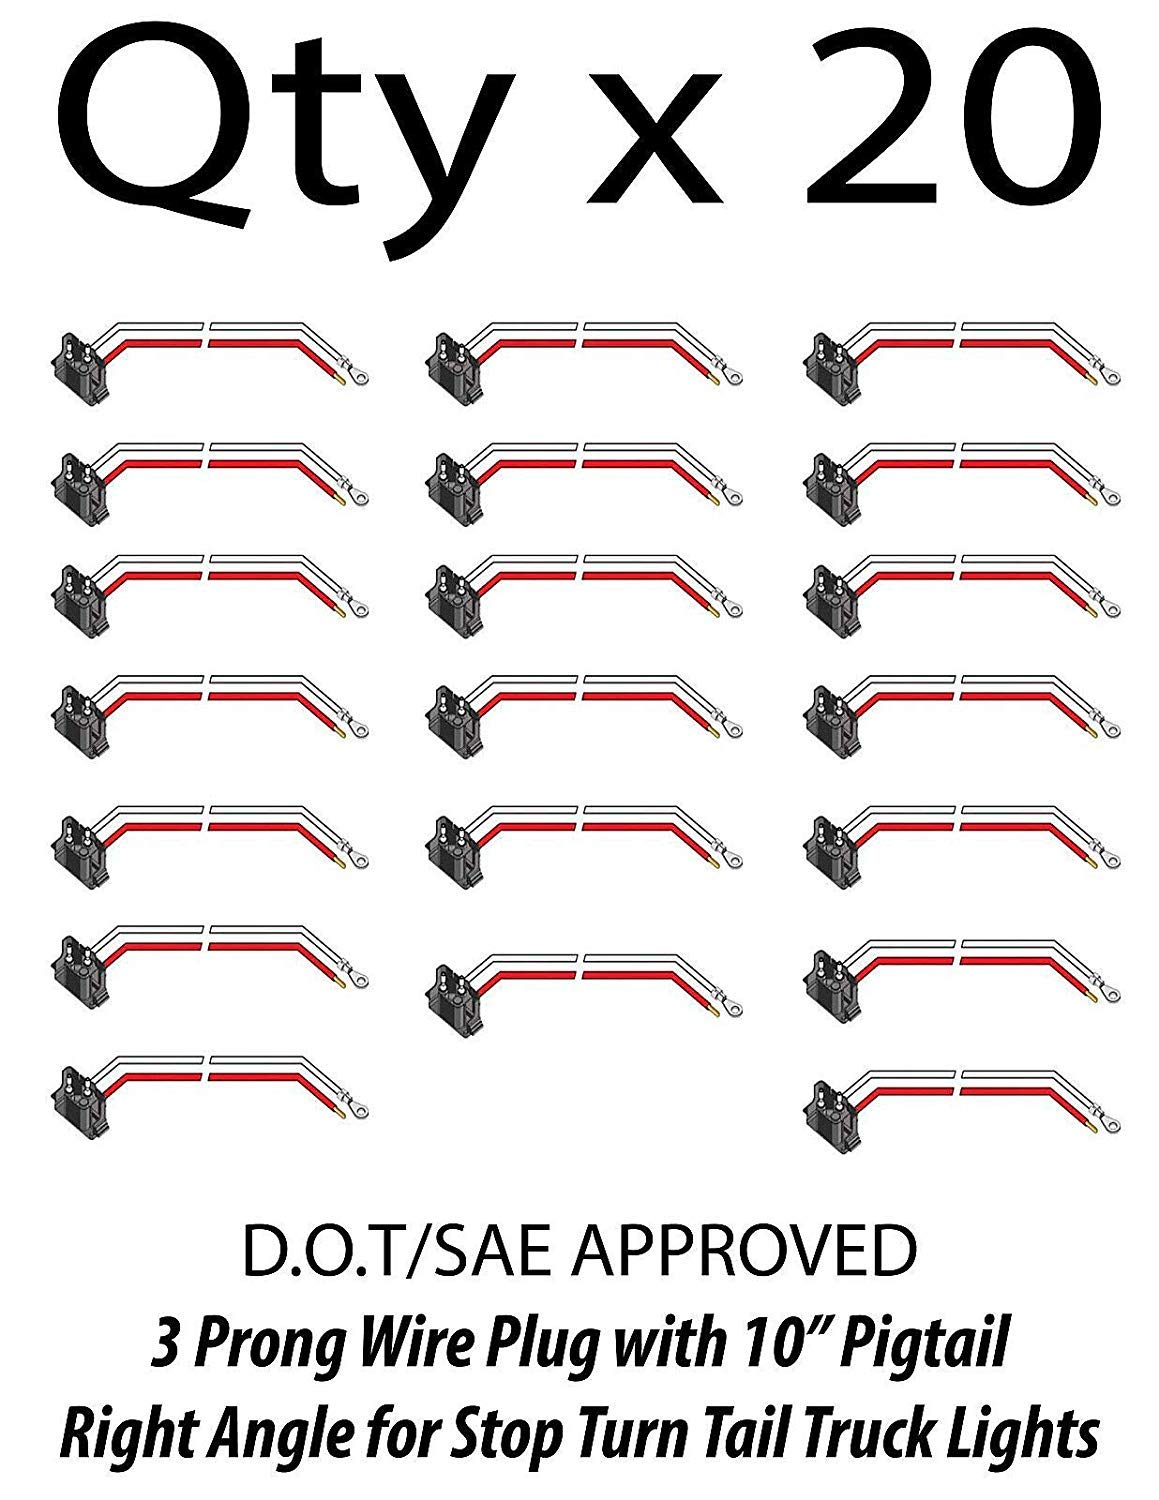 [ALL STAR TRUCK PARTS] 3 Prong Pigtail Wire Right Angle Plug for Truck Trailer Stop Turn Tail- Qty 20 by All Star Truck Parts